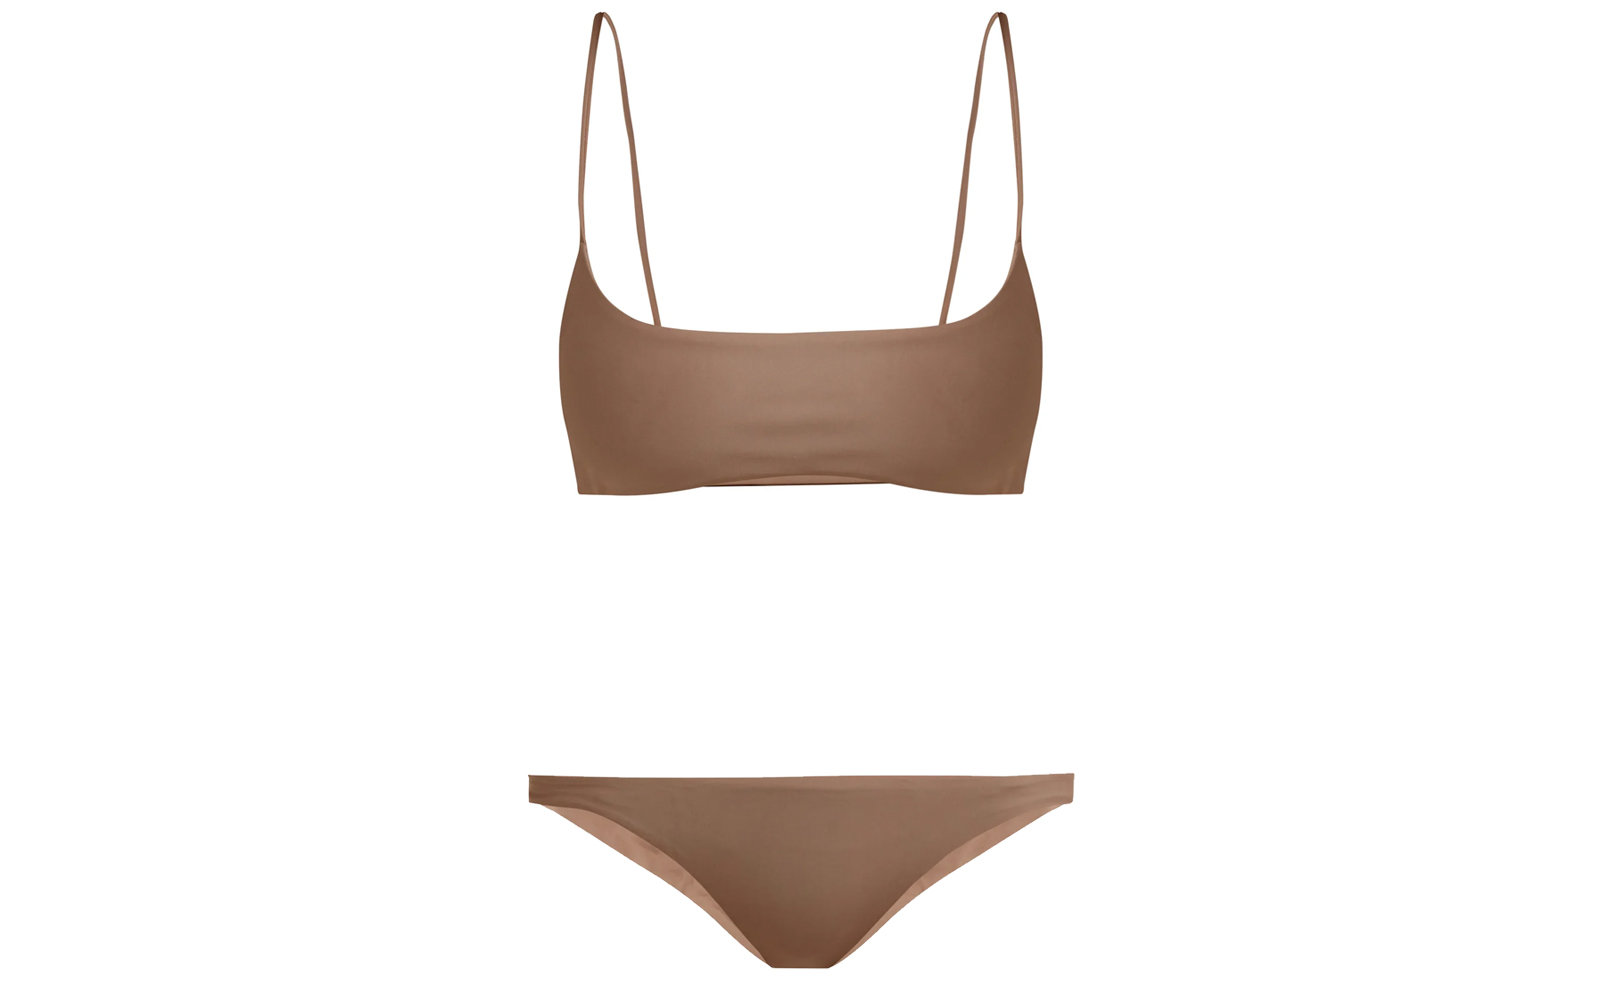 Jade Swim 'Muse' Scoop Bikini Top and 'Most Wanted' Bikini Briefs